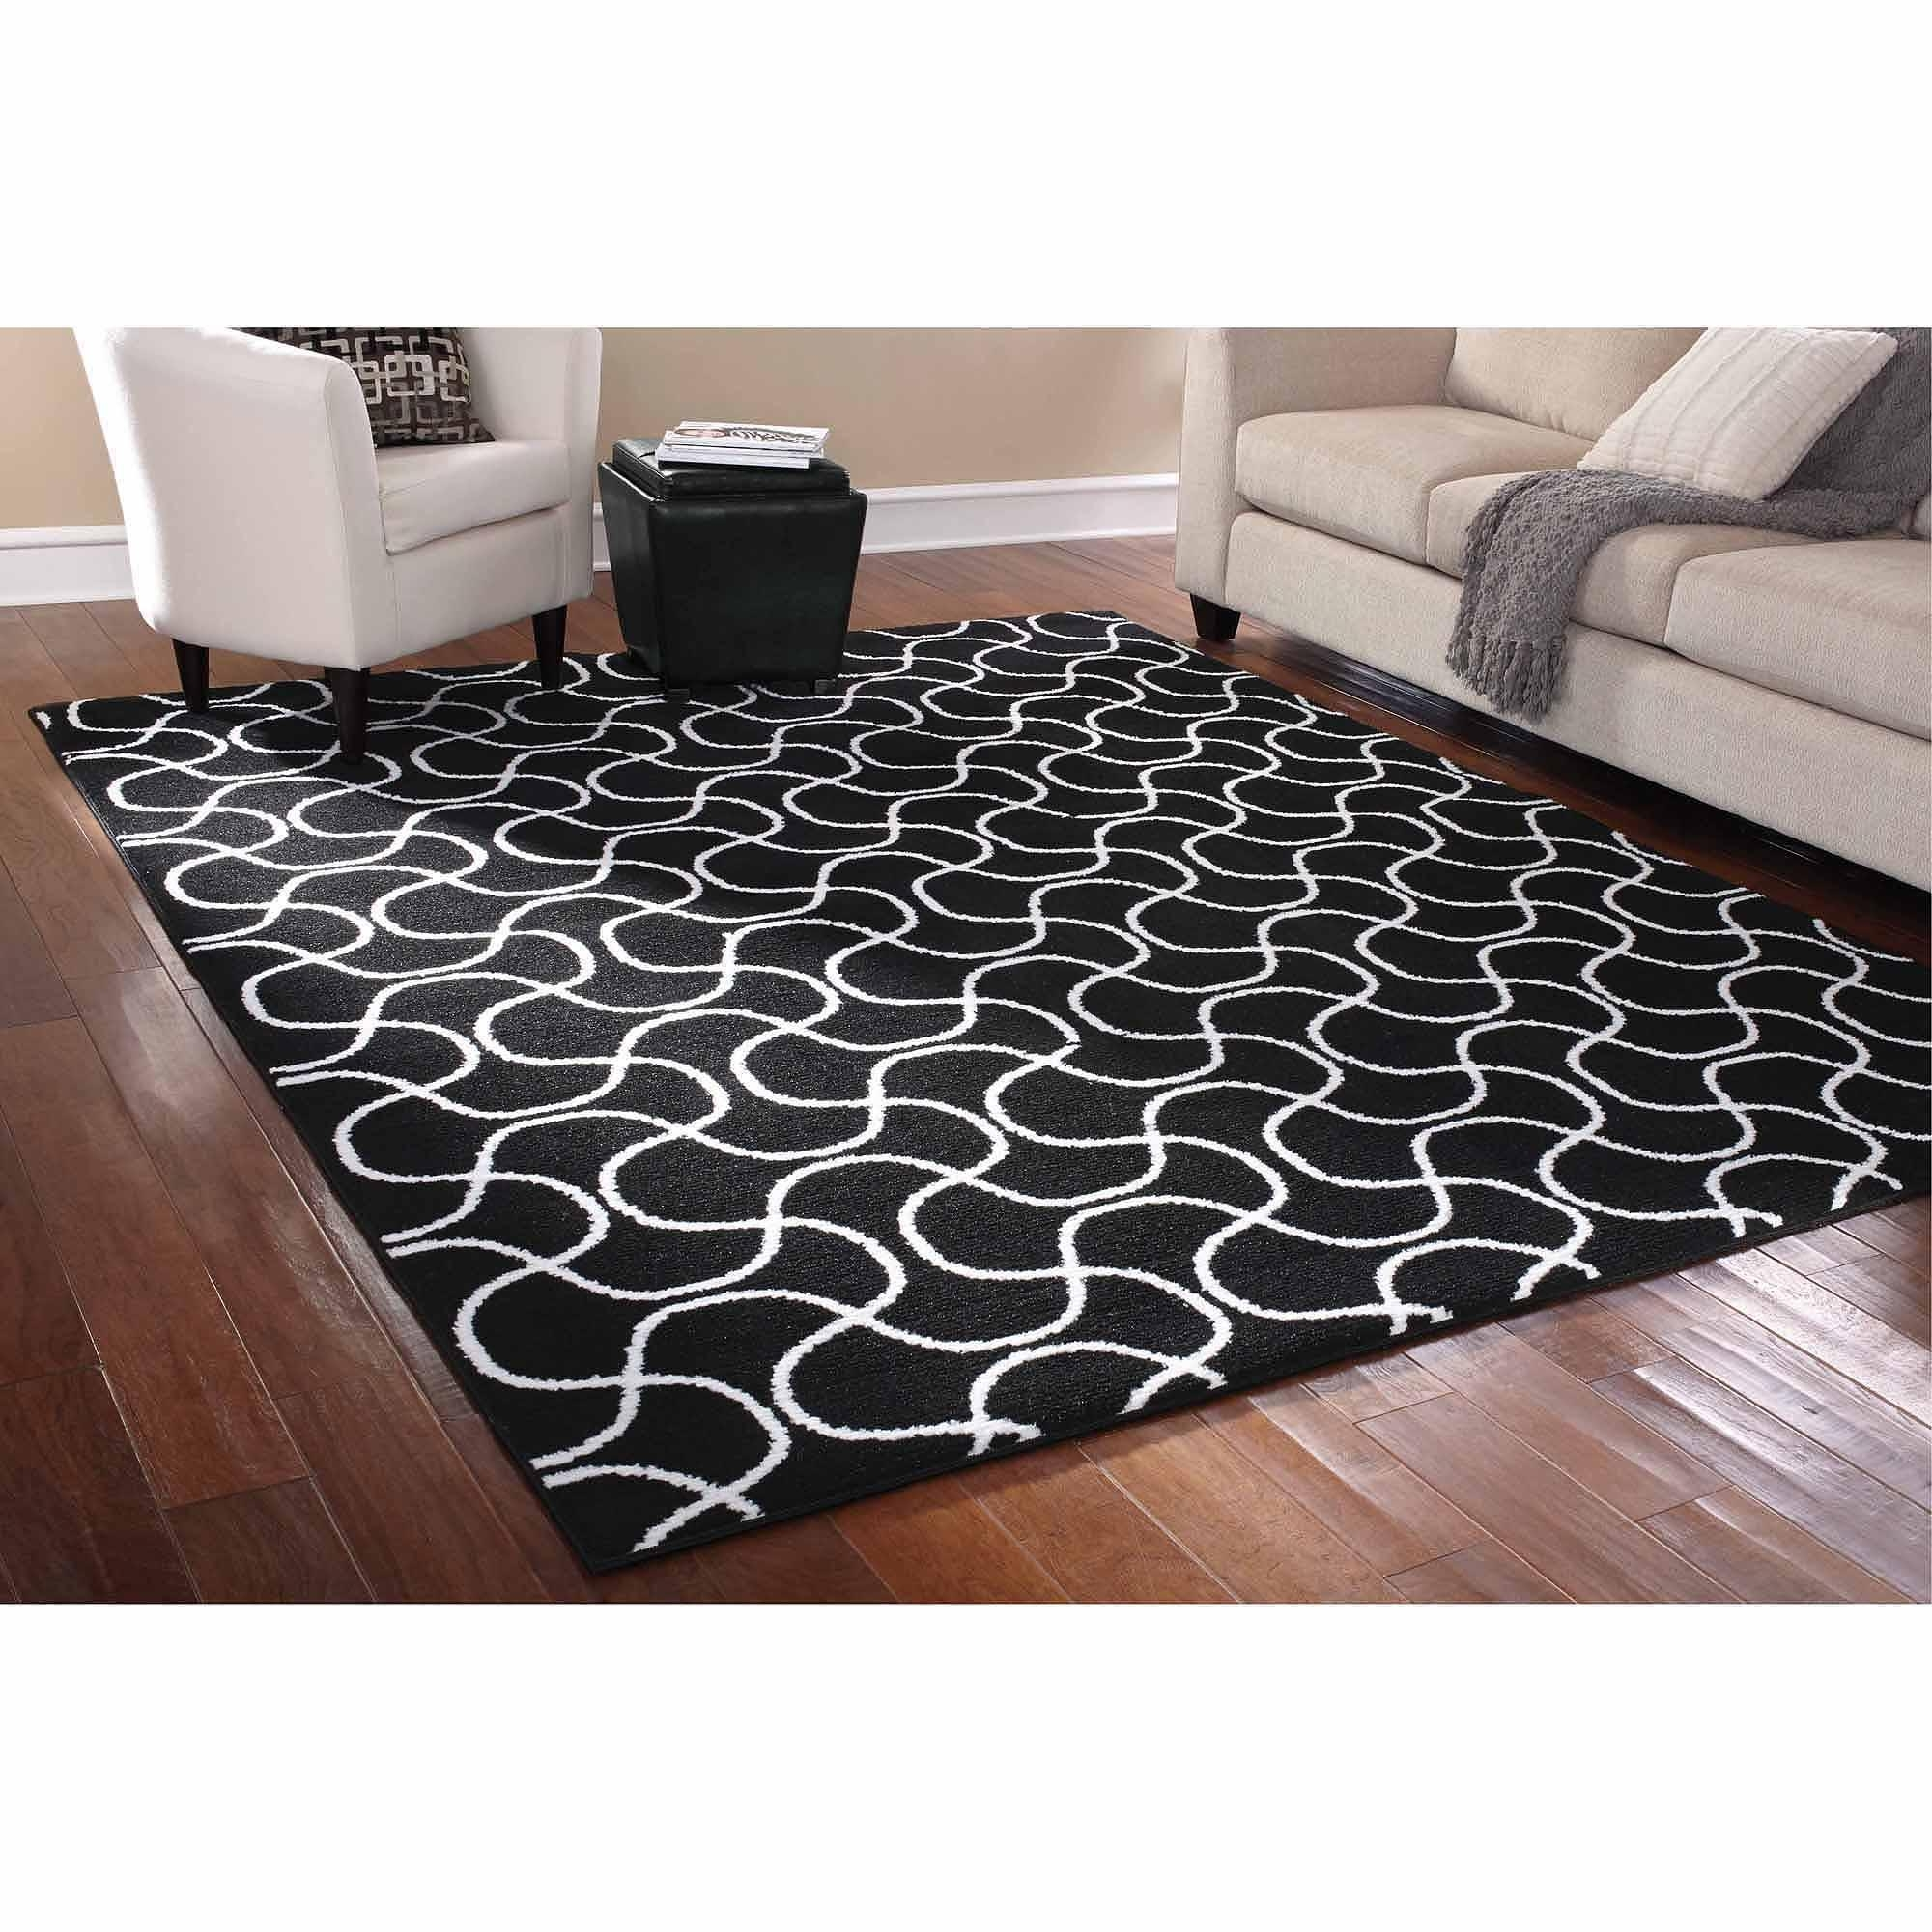 Rugs Appealing Pattern 8×10 Area Rug For Nice Floor Decor Ideas Inside Cheap Silver Rugs (Image 10 of 15)